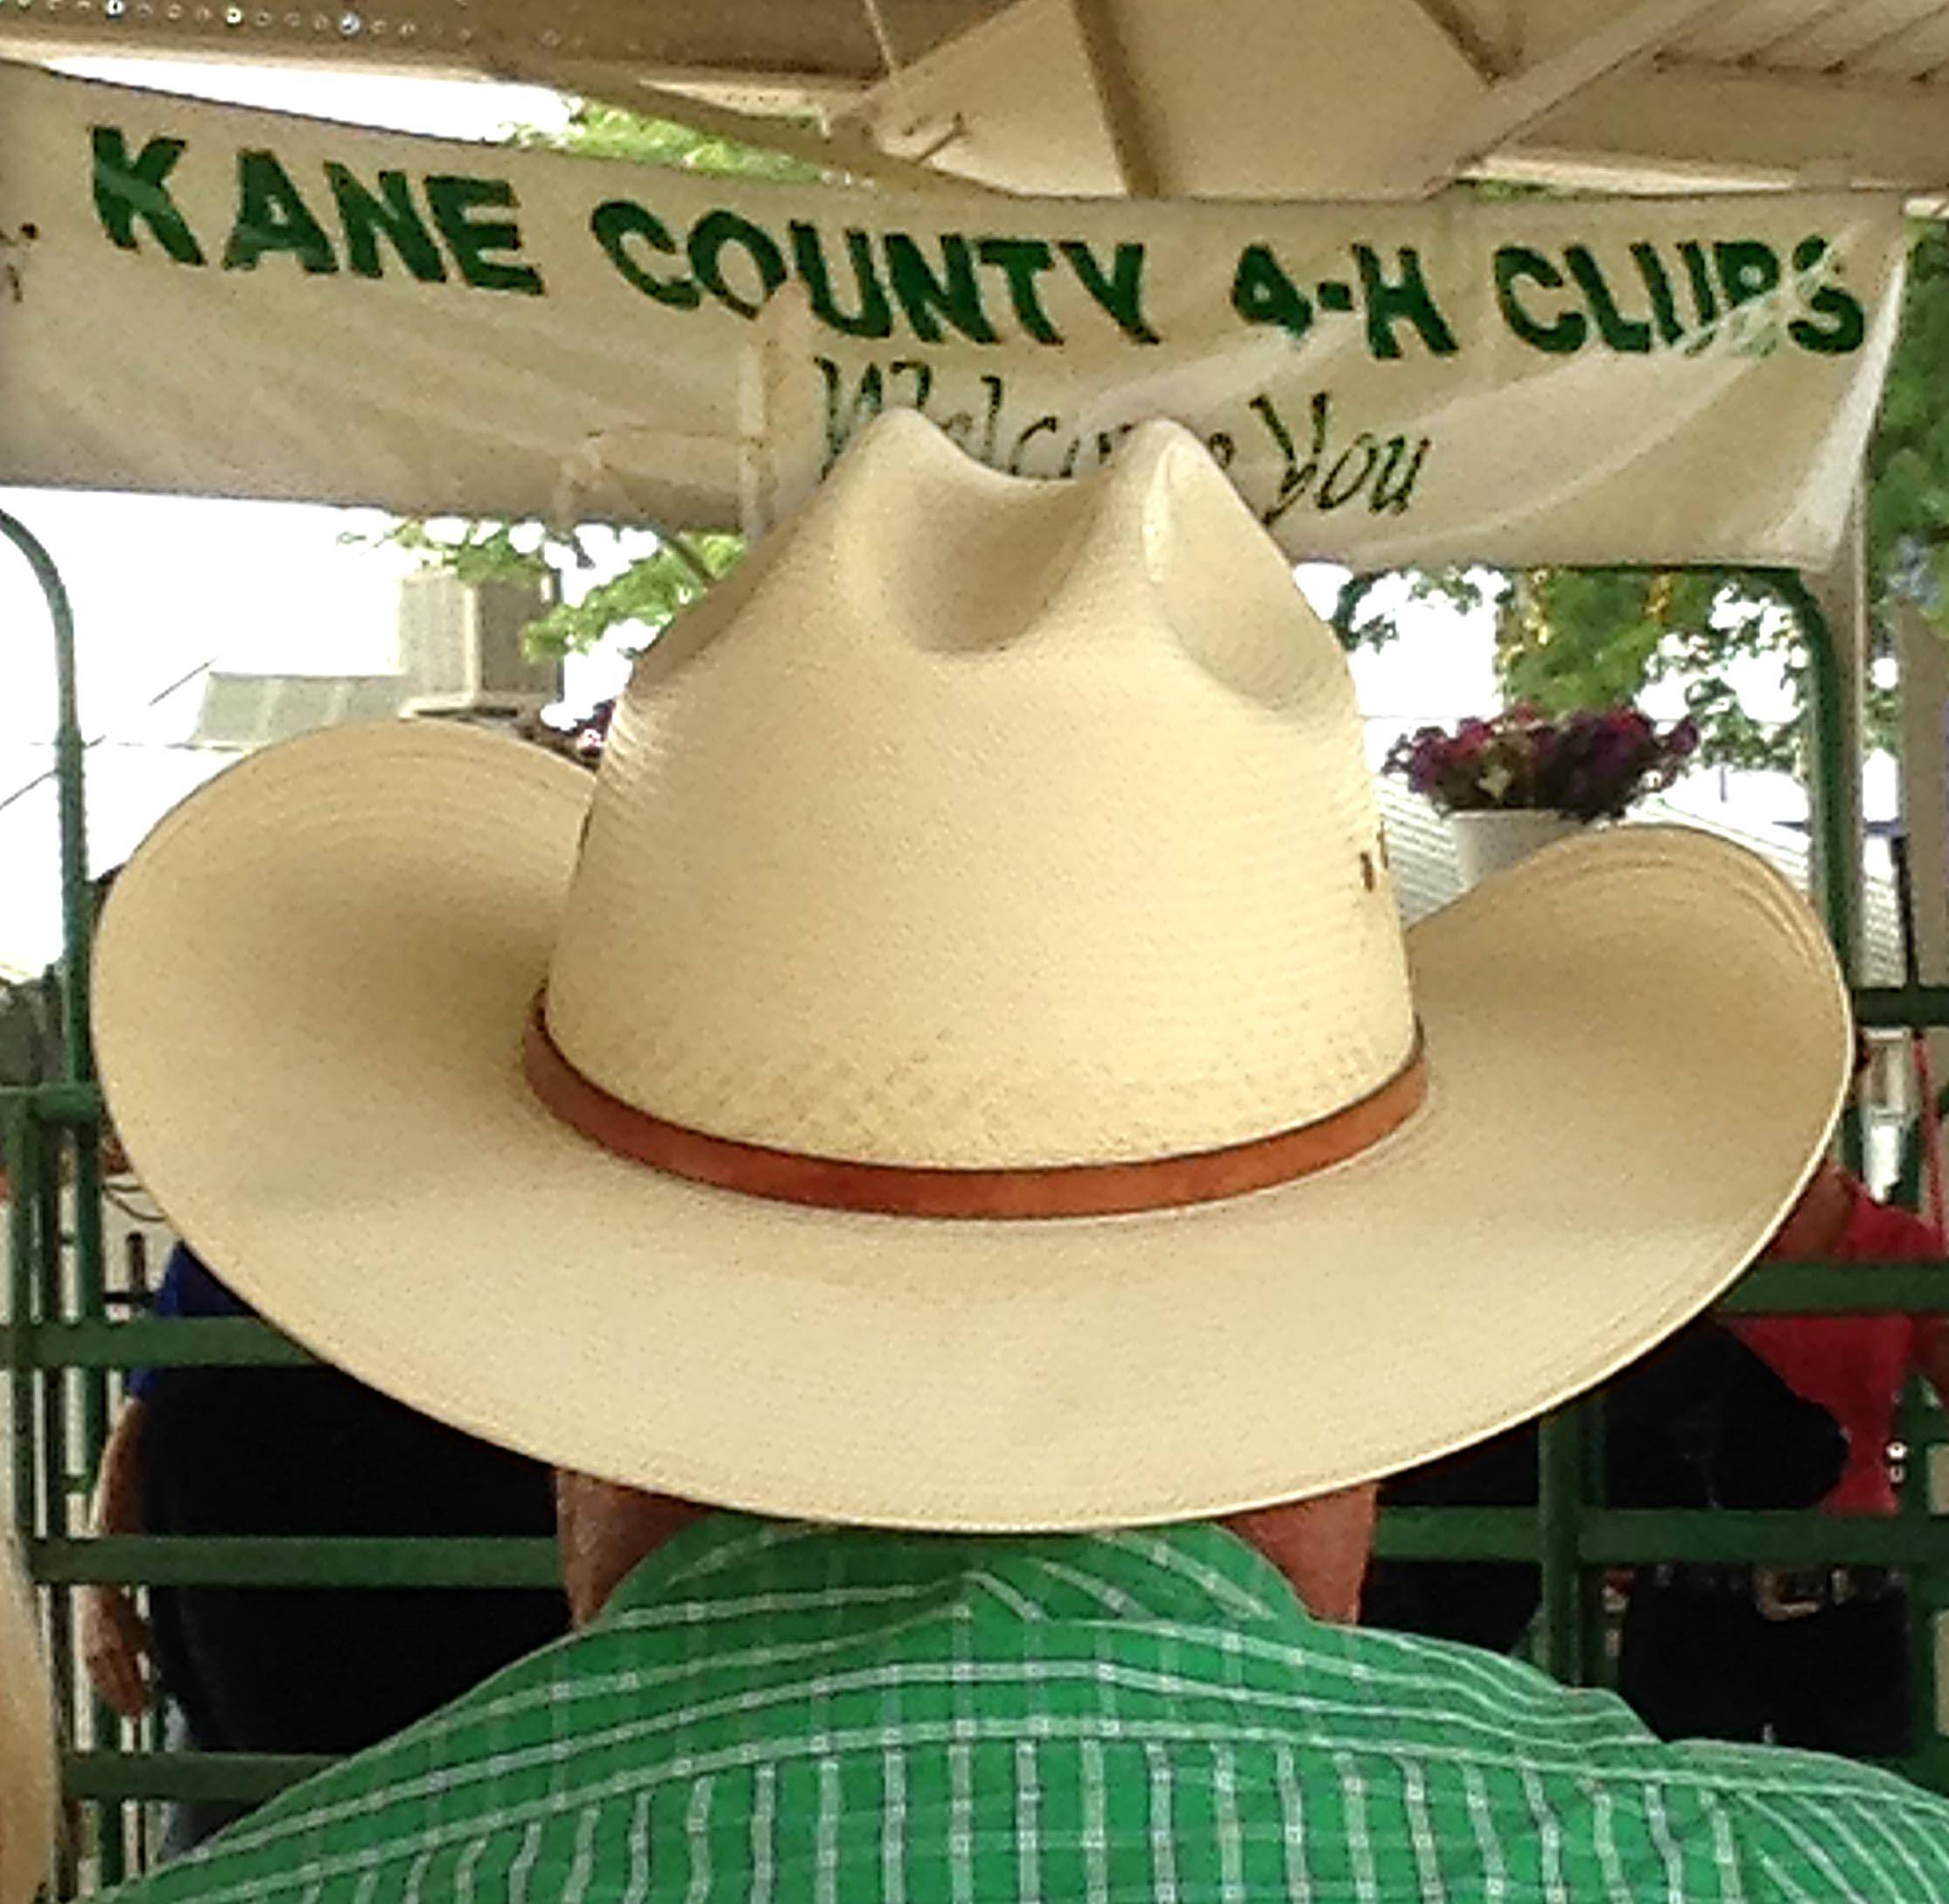 The 4-H Blue Ribbon Sale drew spectators to the livestock arena Sunday, the final day of the Kane County Fair. Steers, cattle, hogs, sheep and other livestock to win blue ribbon awards during the fair were sold at auction Sunday.